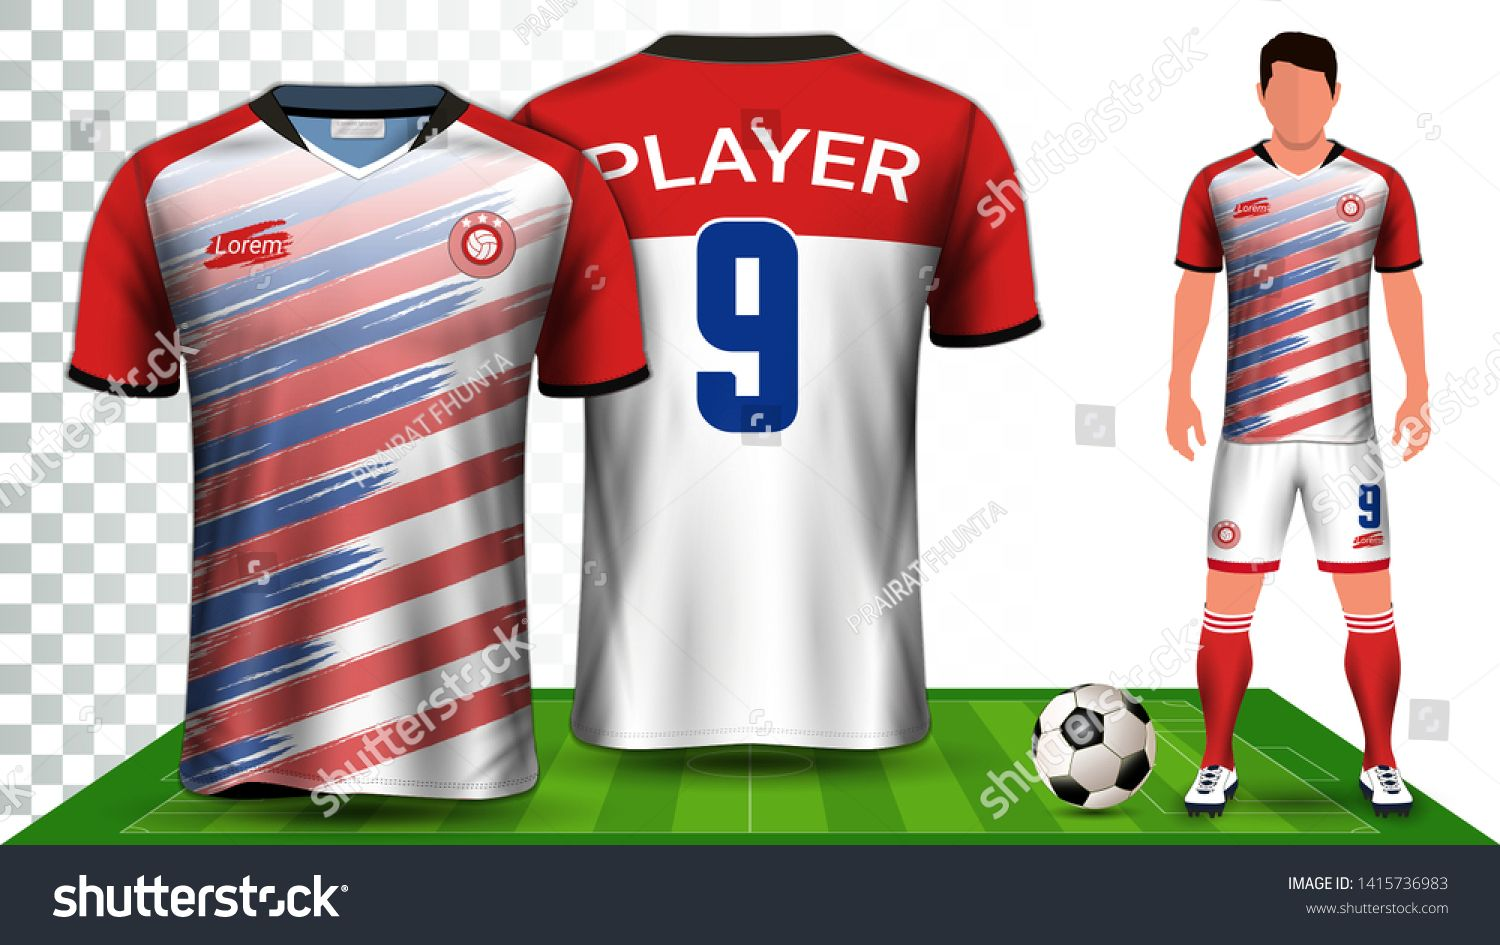 Download Soccer Jersey Sport Shirt Or Football Kit Uniform Presentation Mockup Template Front And Back View Including Shorts Sports Shirts Football Kits Soccer Jersey